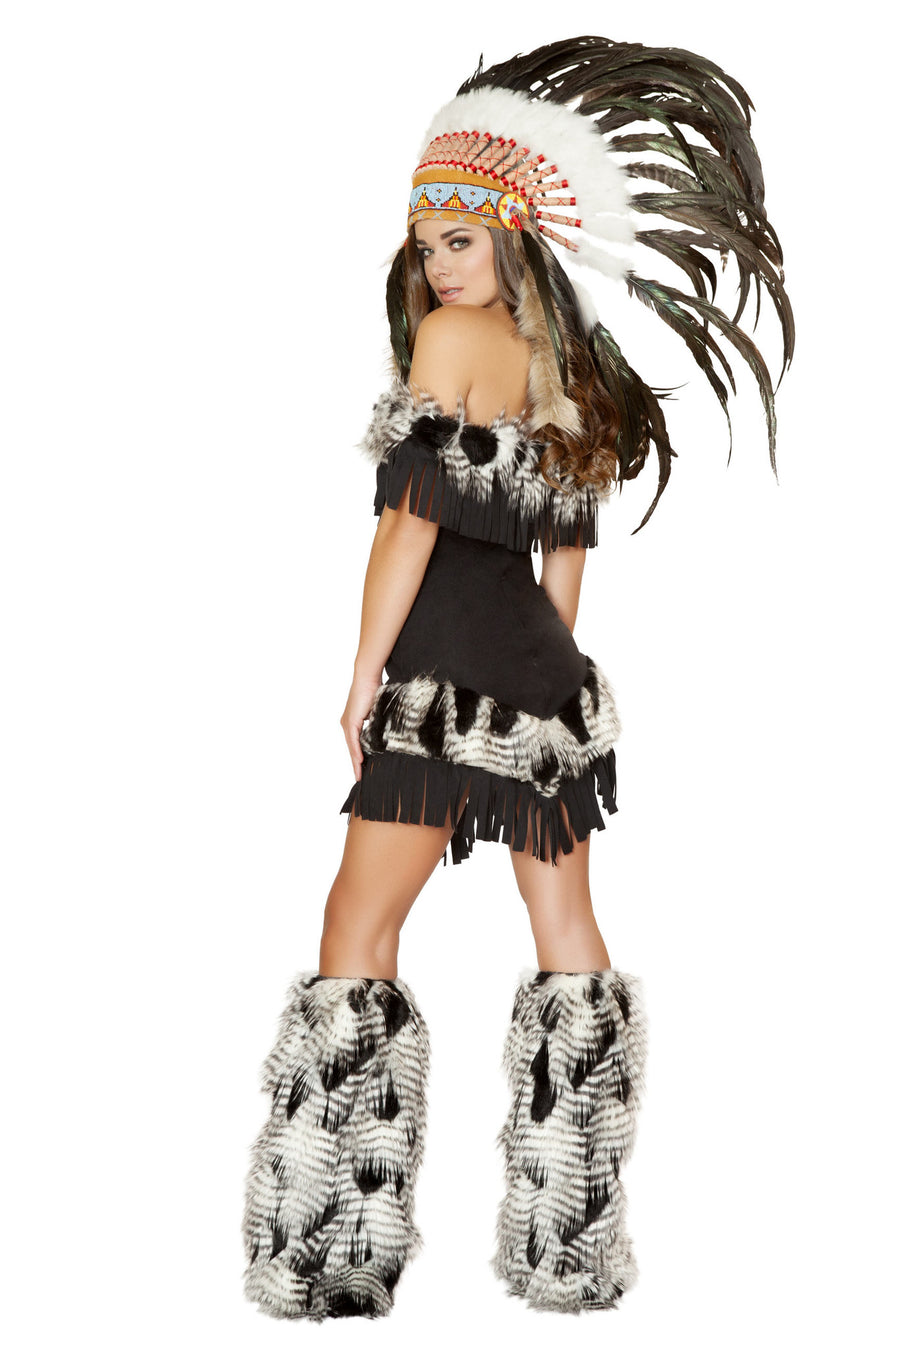 4470 - 1pc Cherokee Princess Costume ${description} | Roma Costume and Roma Confidential wholesale manufacturer of Women Apparel bulk world wide wholesale and world wide drop ship services for Adult Halloween Costumes, Sexy and Elegant Lingerie, Rave Clothing, Club wear, and Christmas Costumes. Costumes,2014 Costumes,New Products, Roma Costume, Inc., Roma Costume, Roma Confidential, Wholesale clothing, drop ship, drop ship service, Wholesale Lingerie, Wholesale Adult Halloween Costumes, Rave Clothing, EDM Clothing, Festival Wear, Christmas Costumes, Clubwear, Club wear.